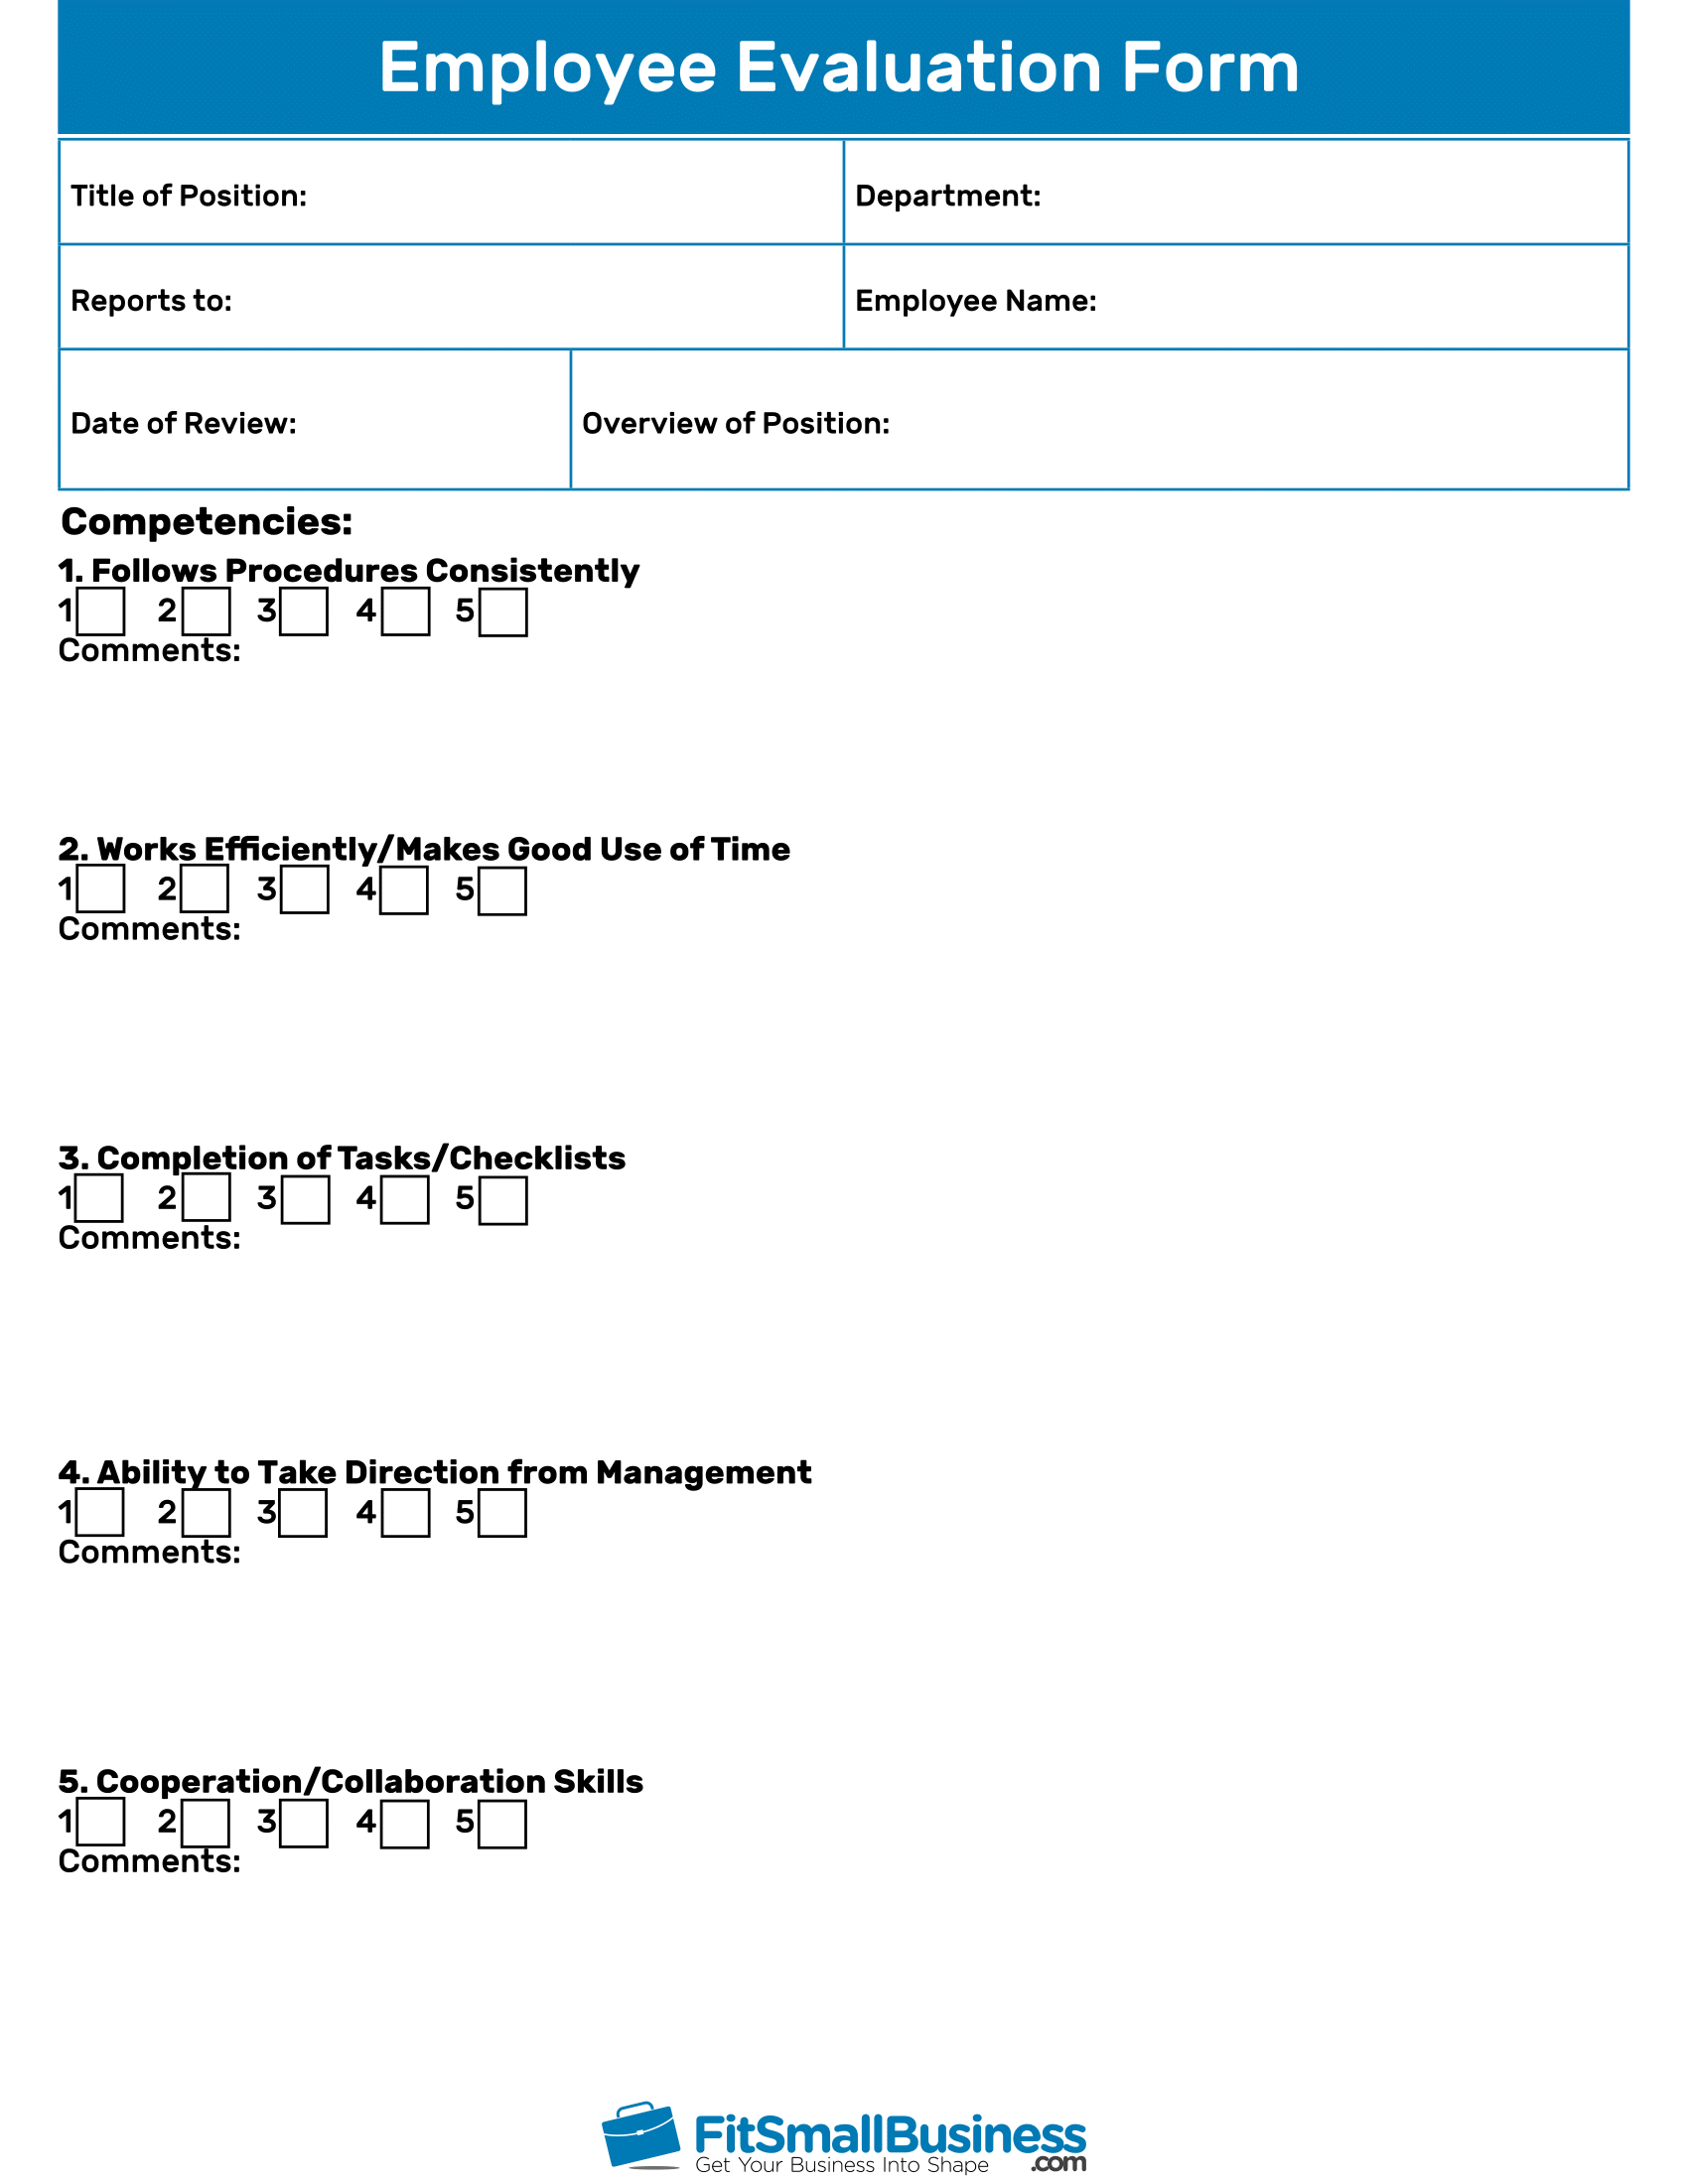 Employee Evaluation Forms Free Performance Review Templates